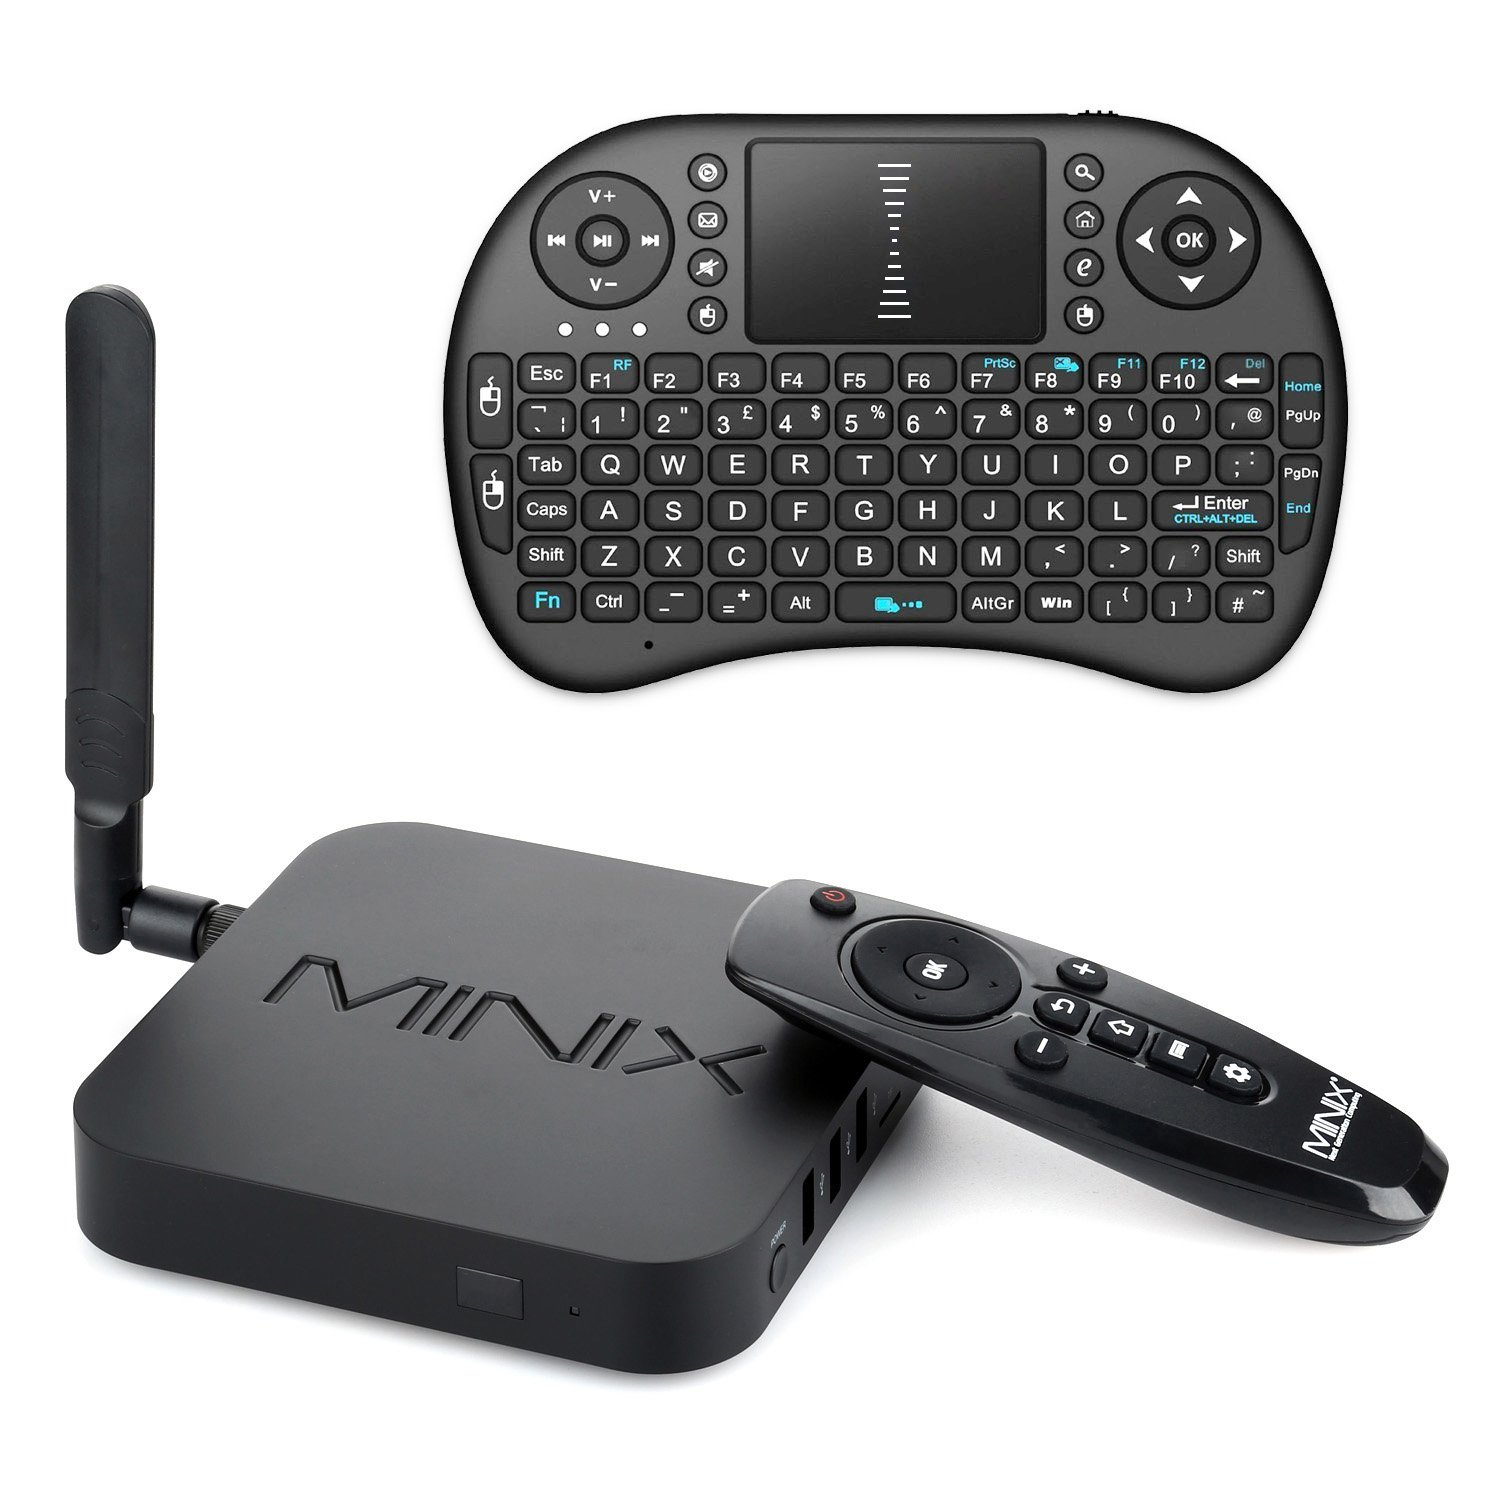 Minix Neo U1 Android 5.1 Lollipop Smart TV Box